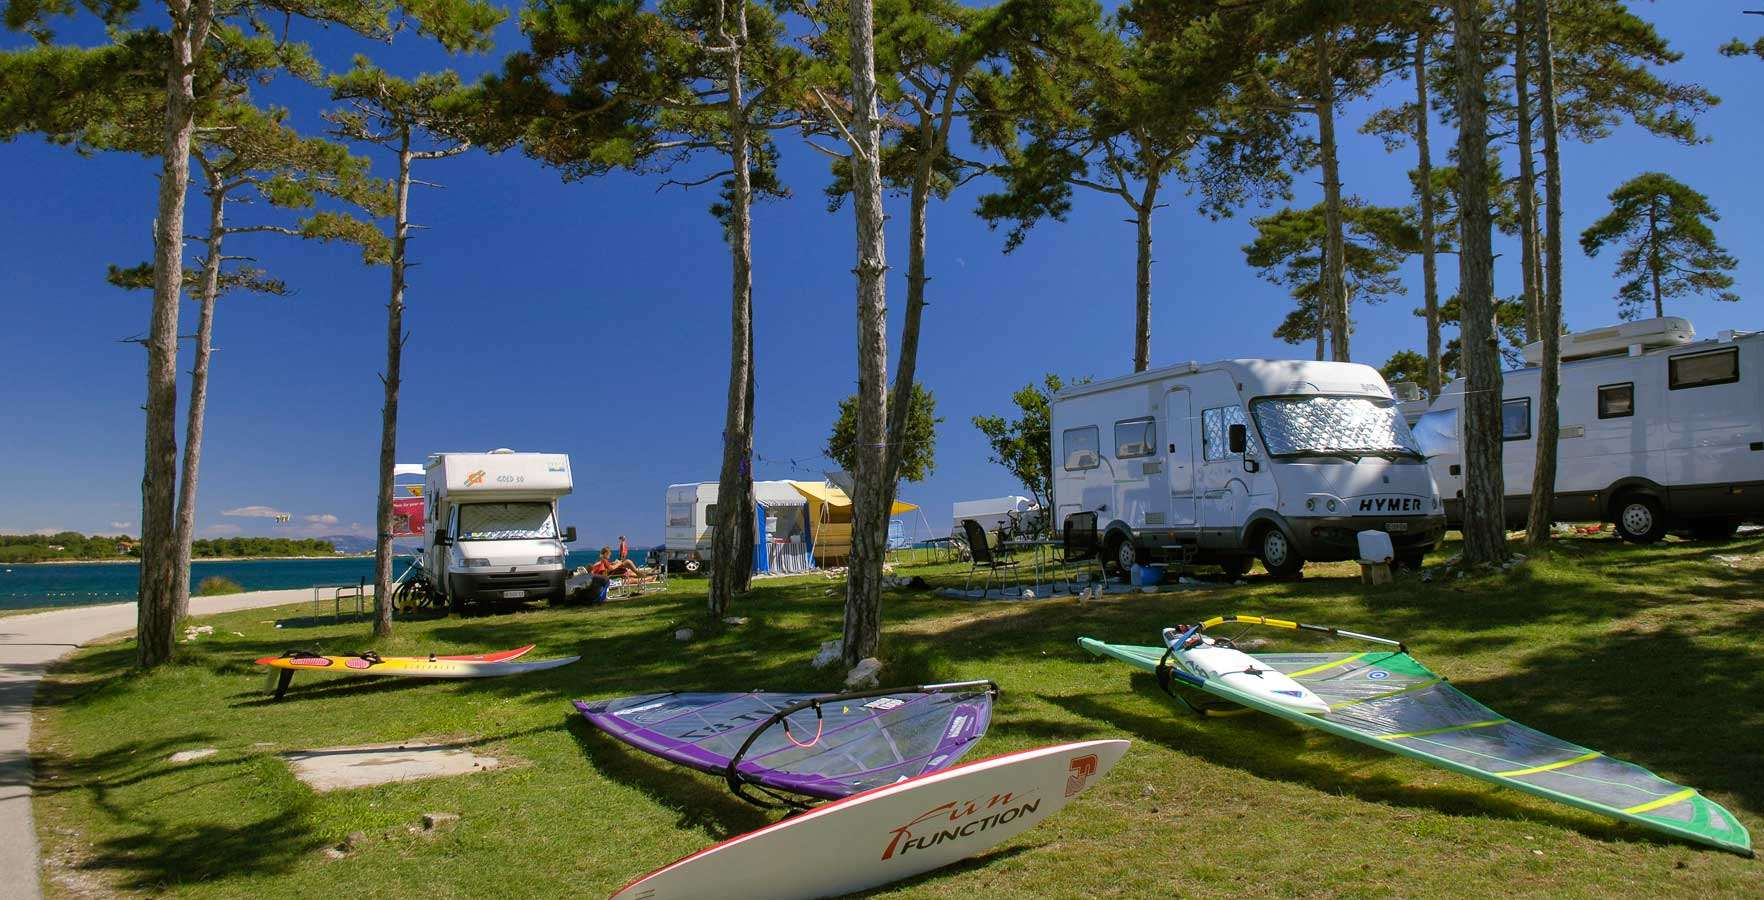 /cmsmedia/stranica_podnozje/21146/medulin-camping-on-the-sea.jpg